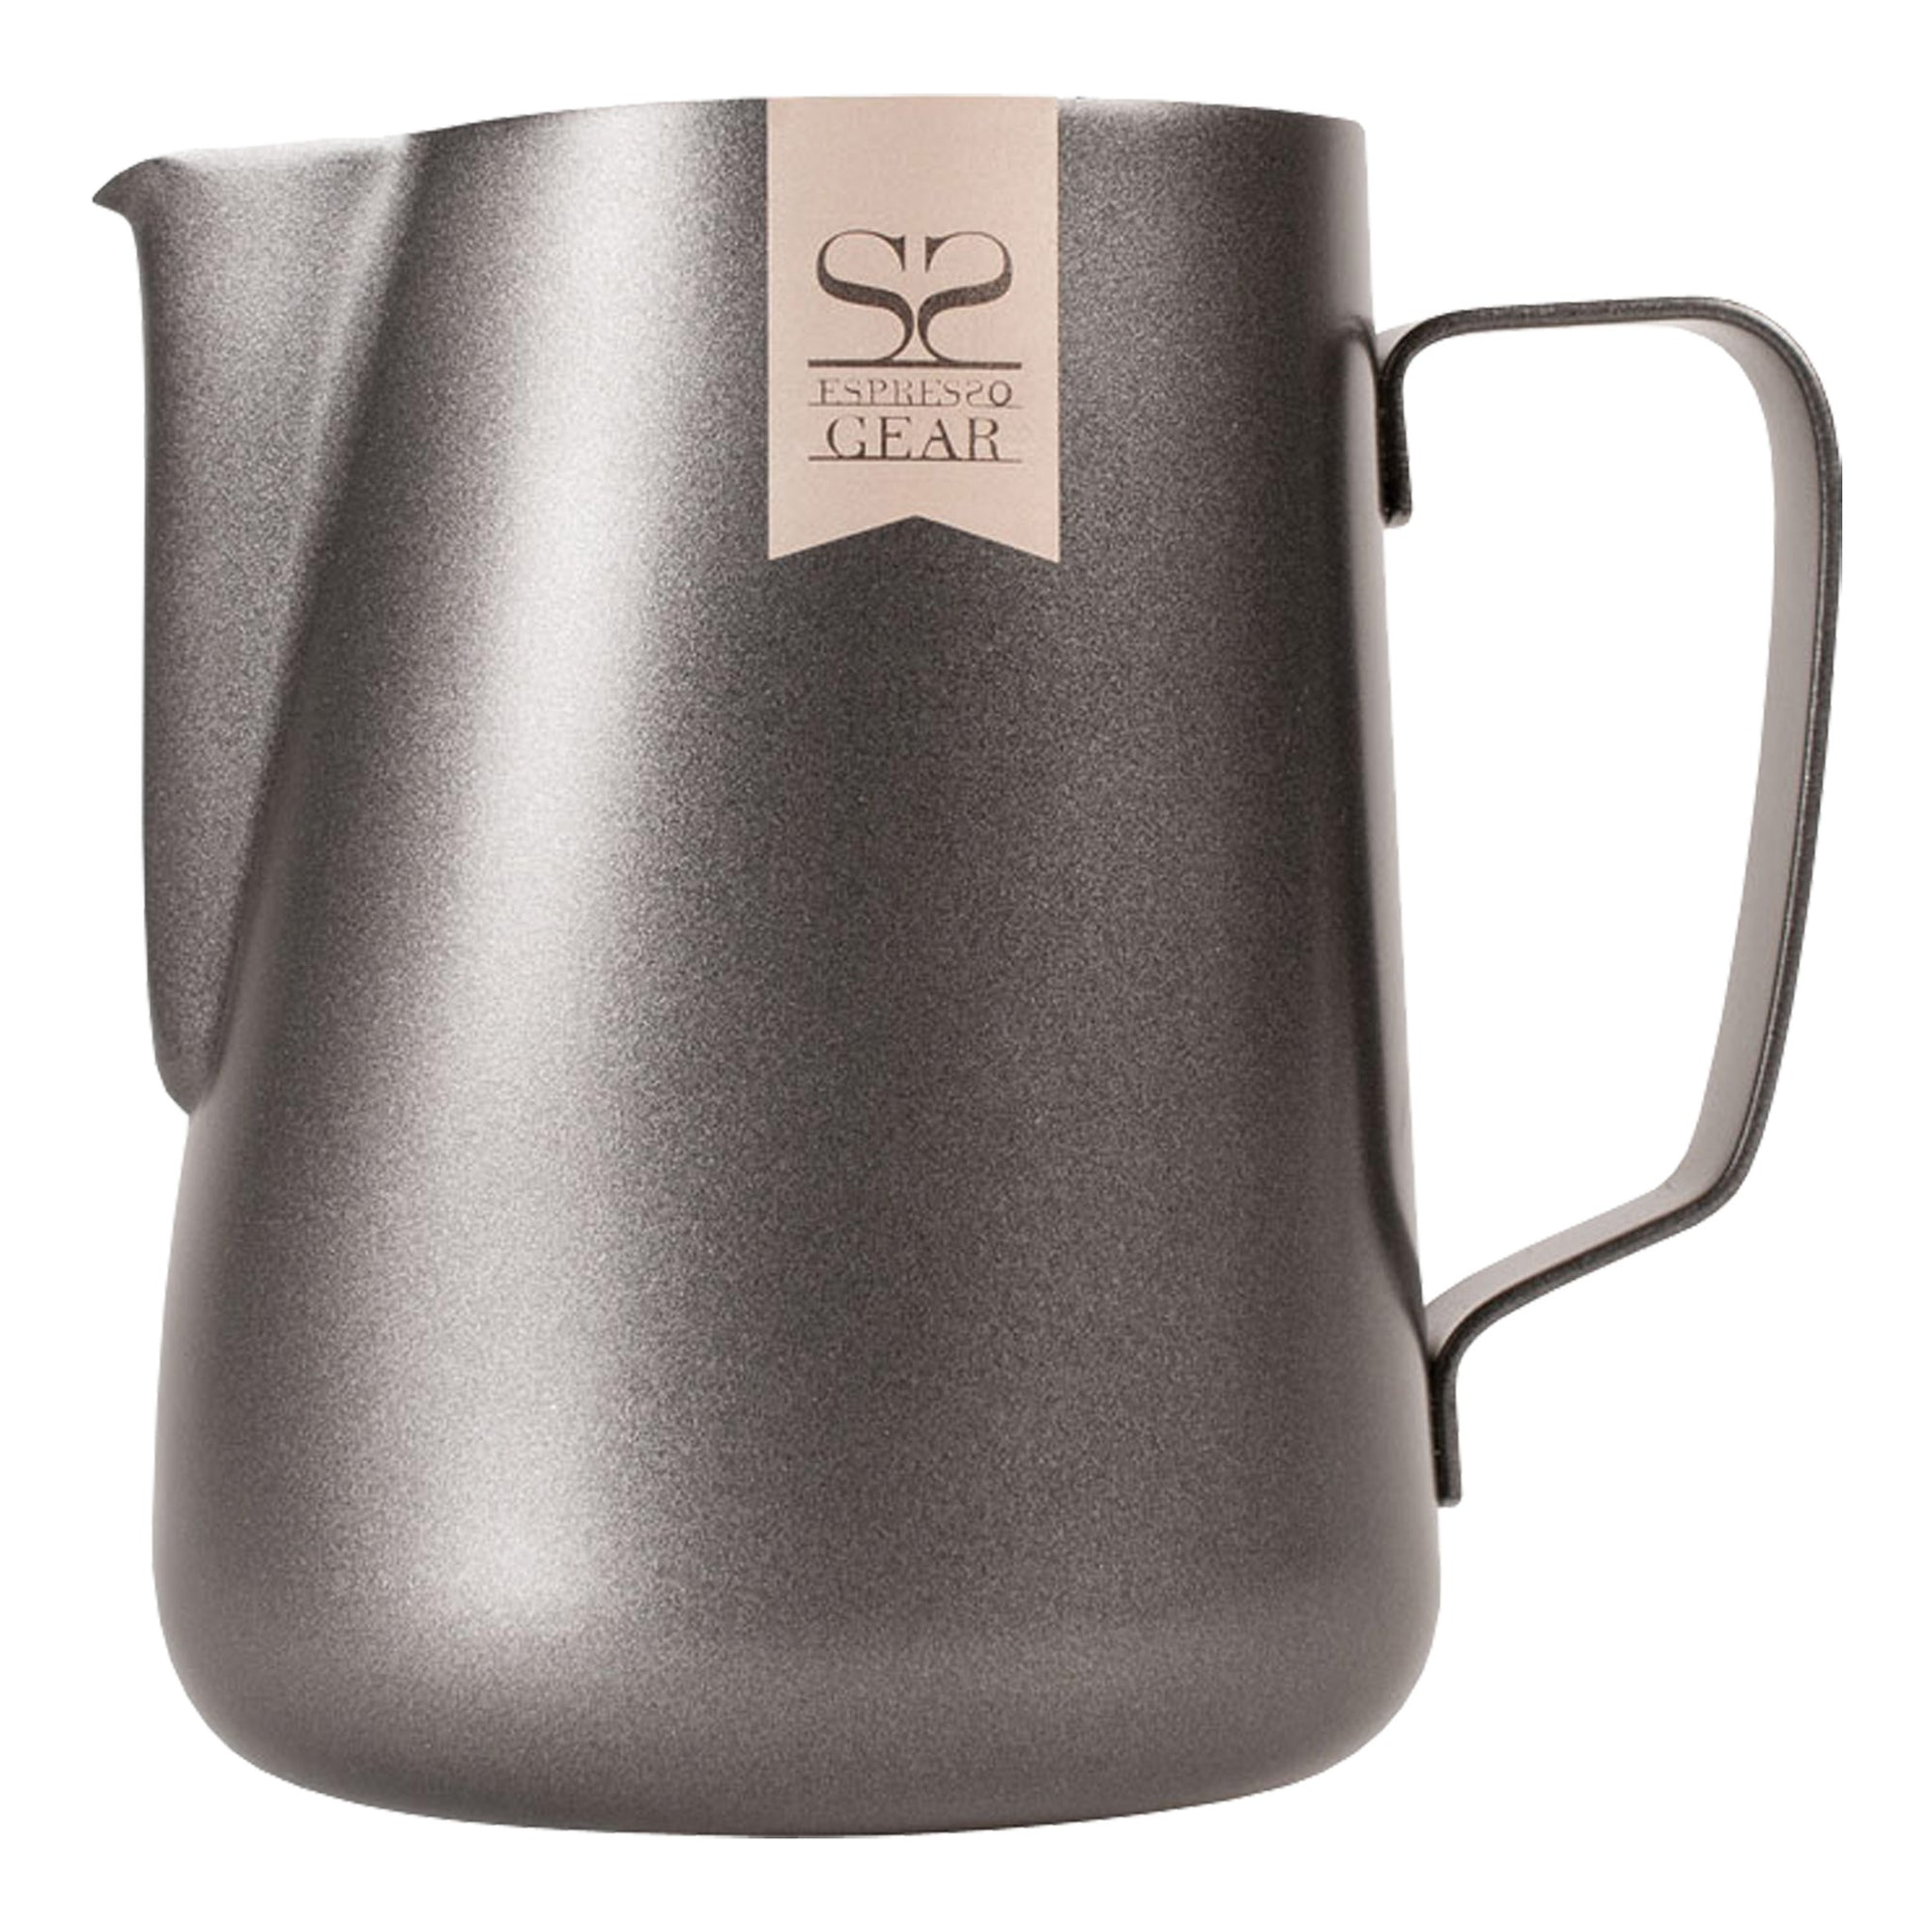 Pitcher Black 350ml -Espresso Gear - Espresso Gear